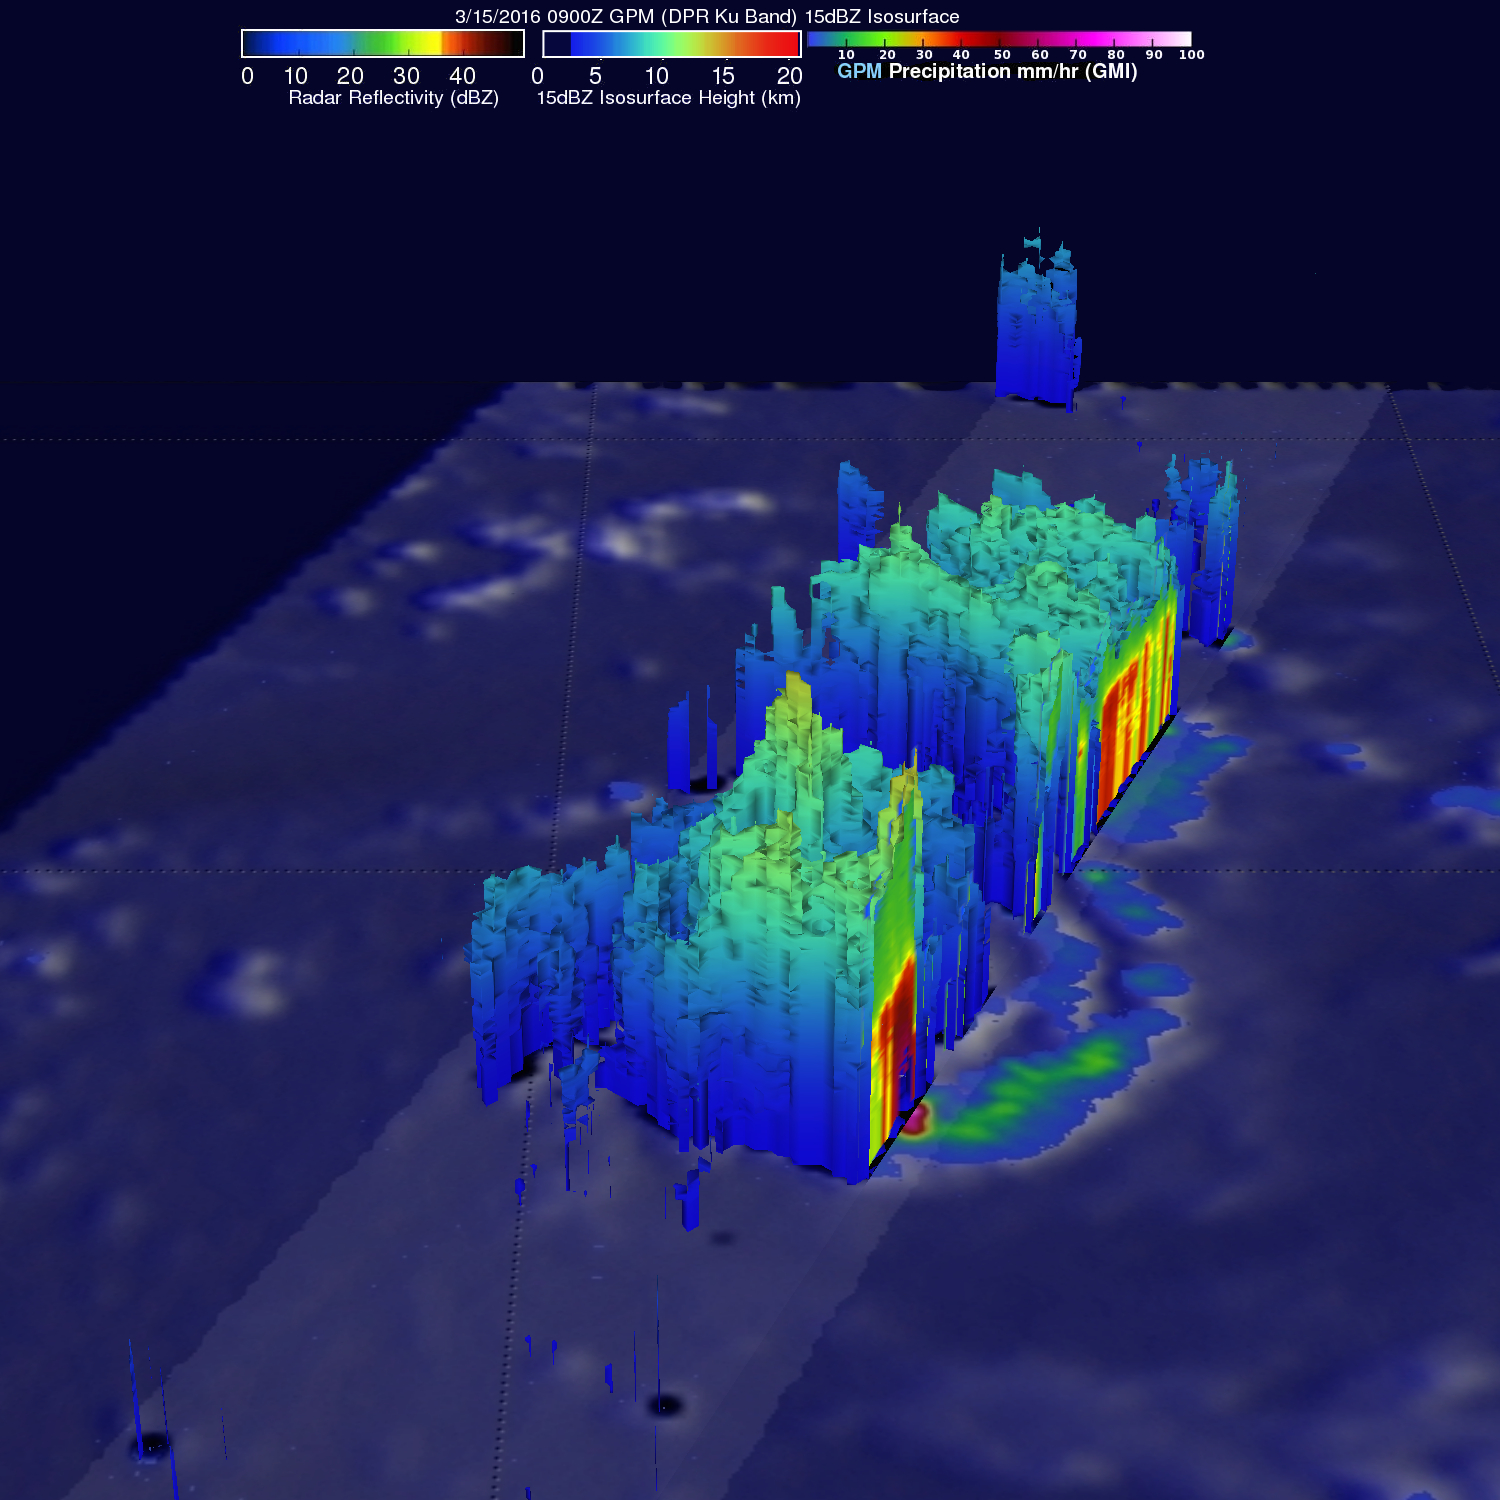 GPM Spots Potential South Indian Ocean Tropical Cyclone